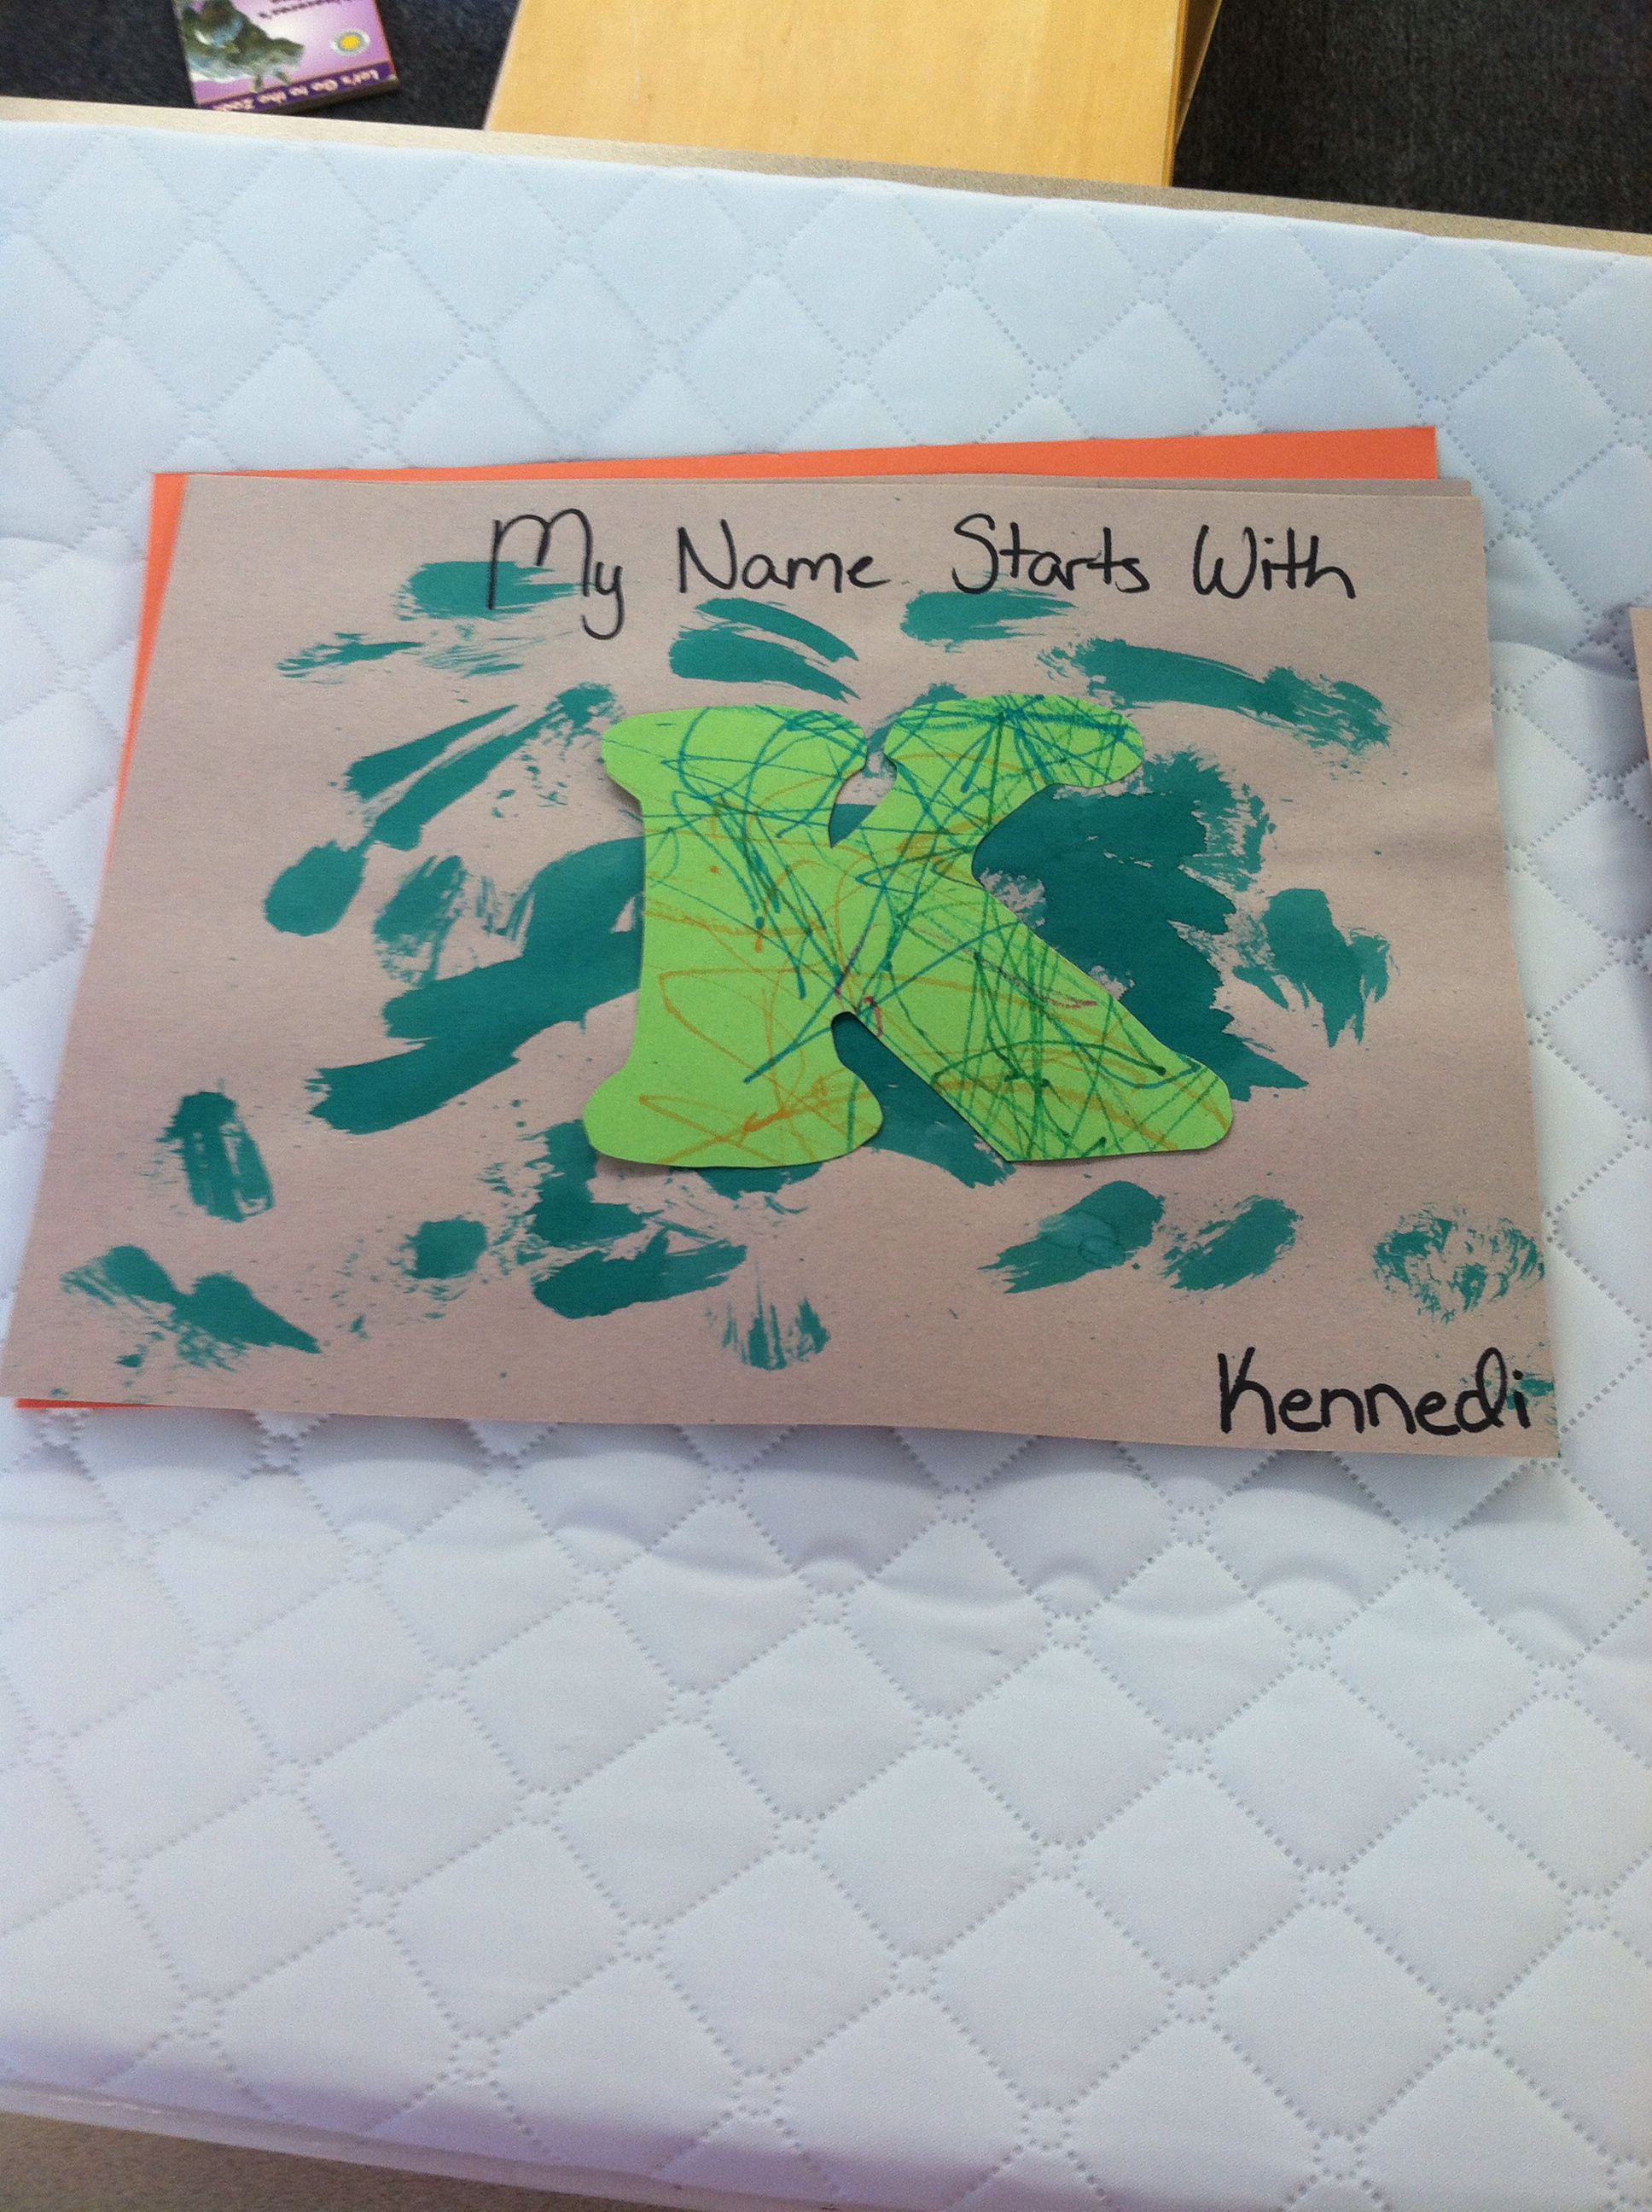 All About Me Week Kids Paint Watercolors And Draw With